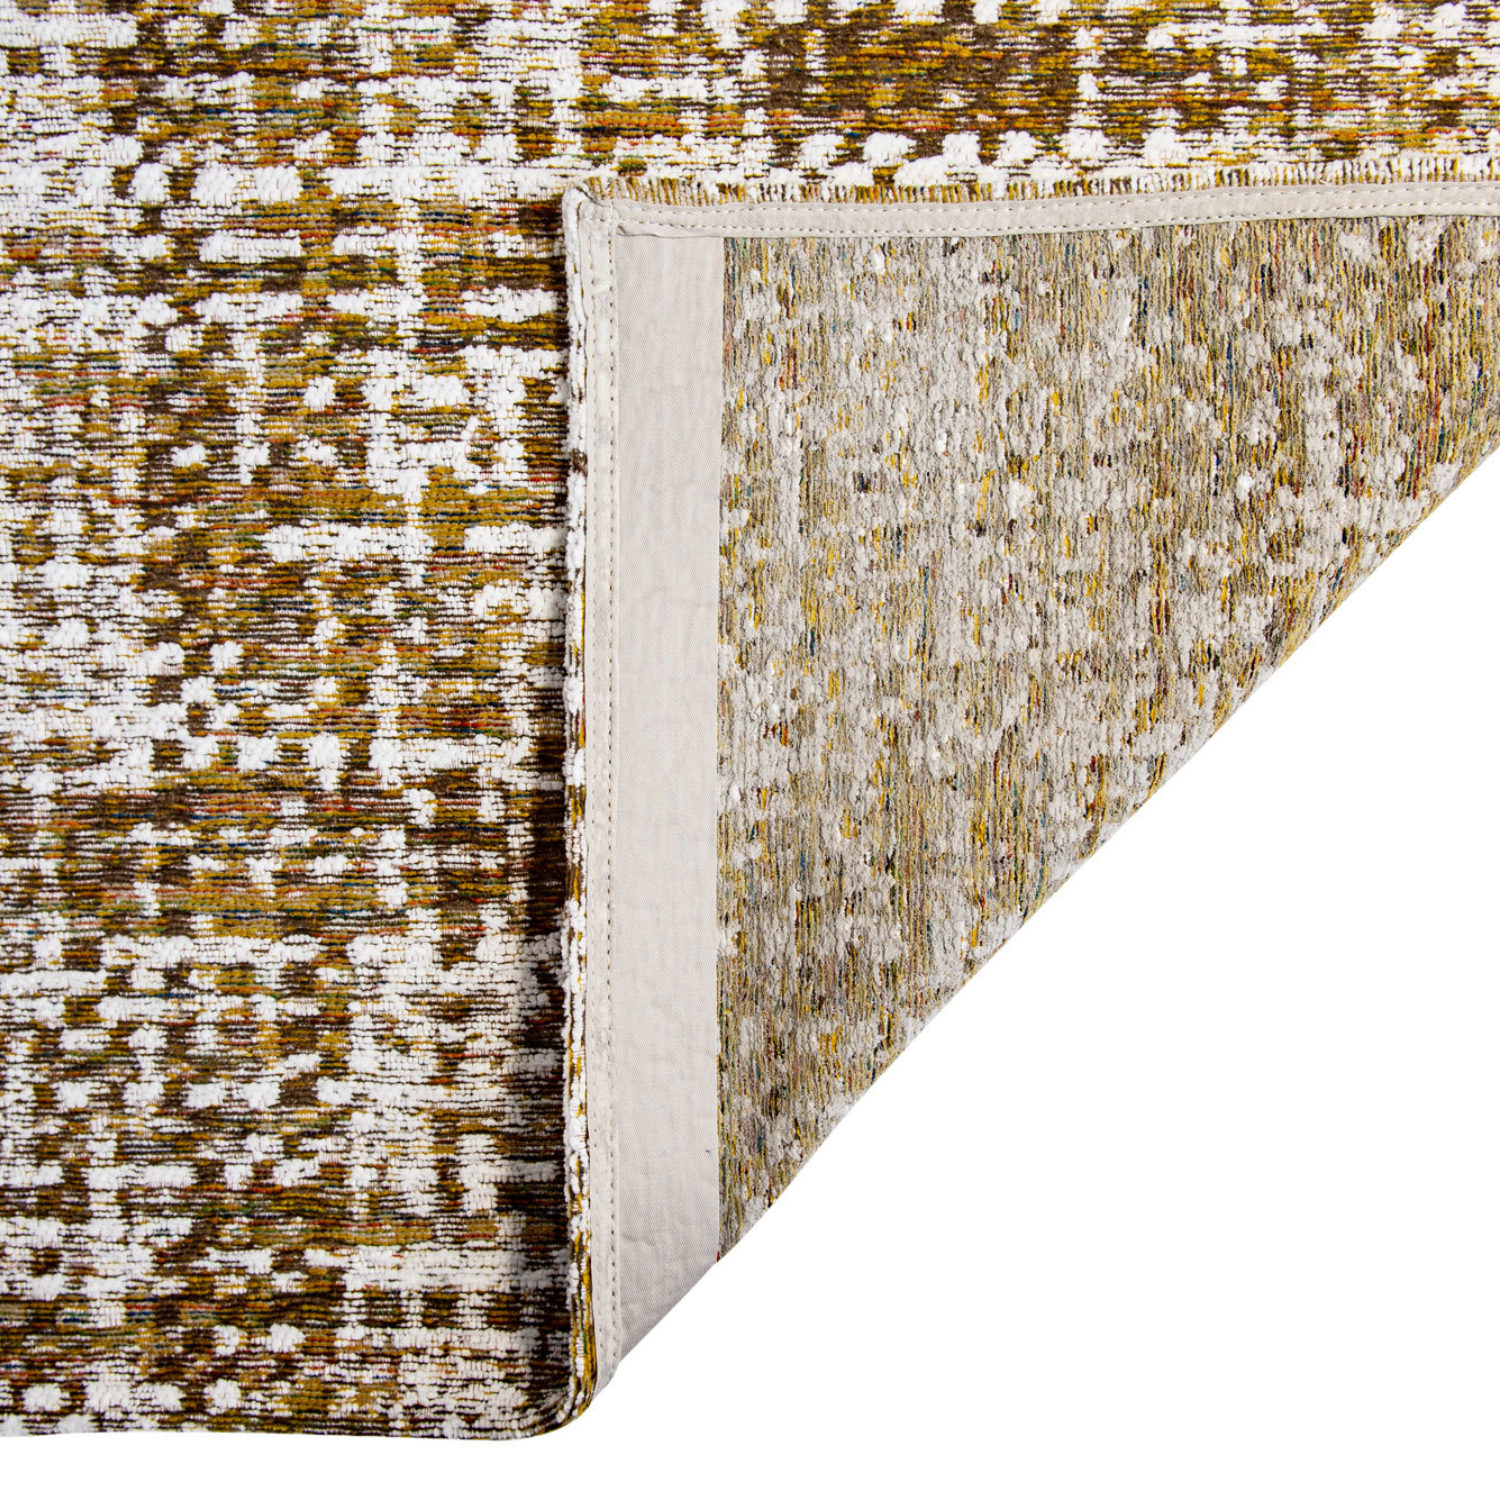 The Colchani rugs have a chanel-esque chequered design